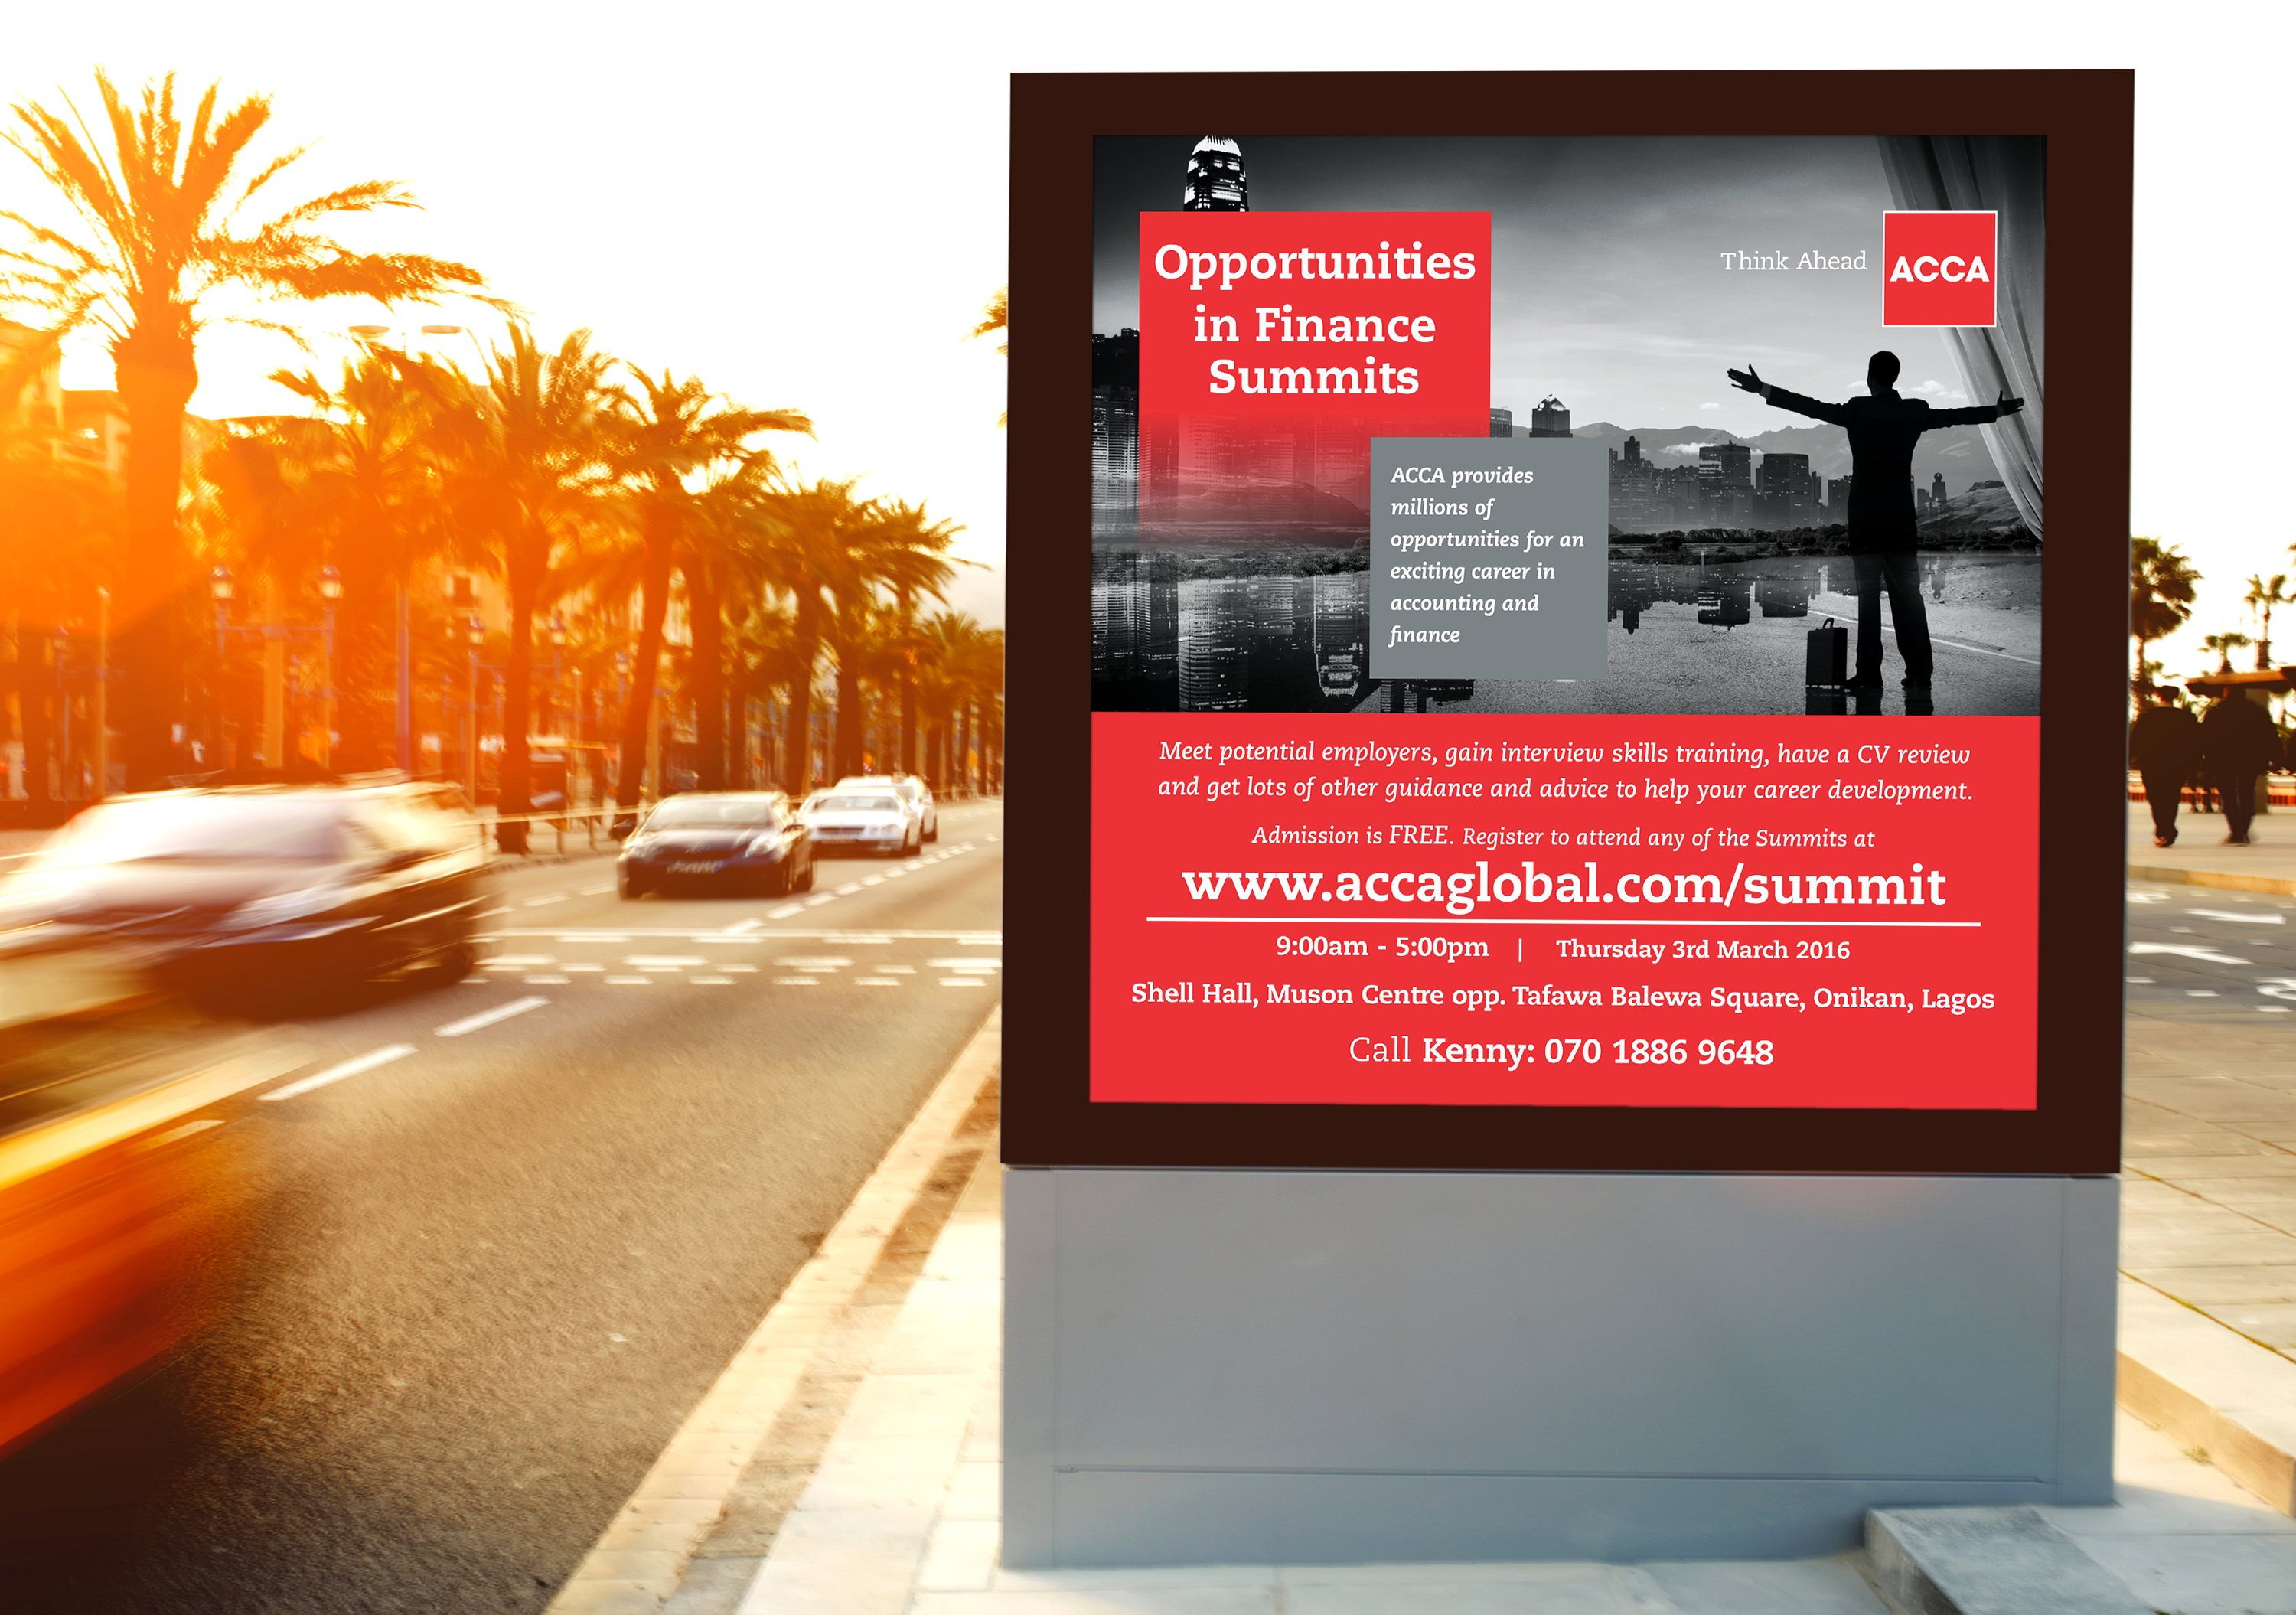 ACCA Roadside Billboard/ CROWNWORTH COMMUNICATIONS